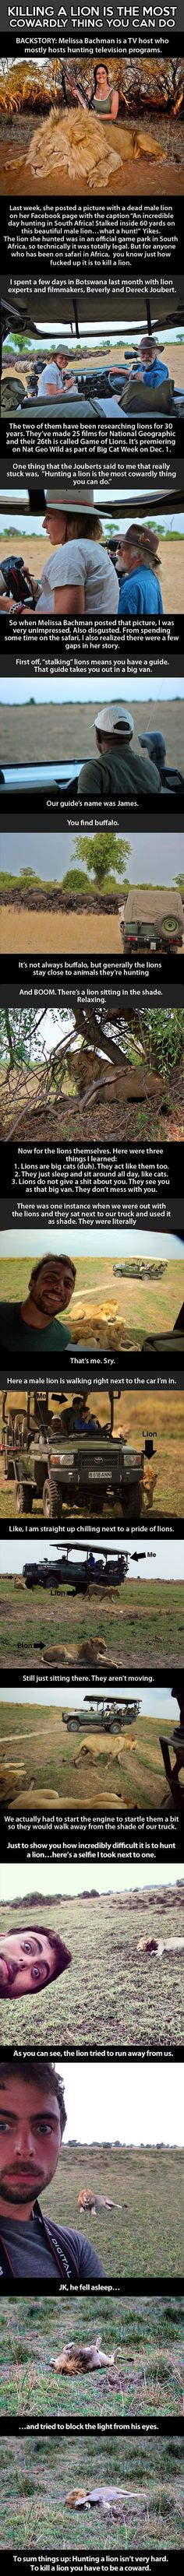 Hunting lions is a cowardly thing to do. It's just Awesome how close they can get to you! And not be mauled to death!